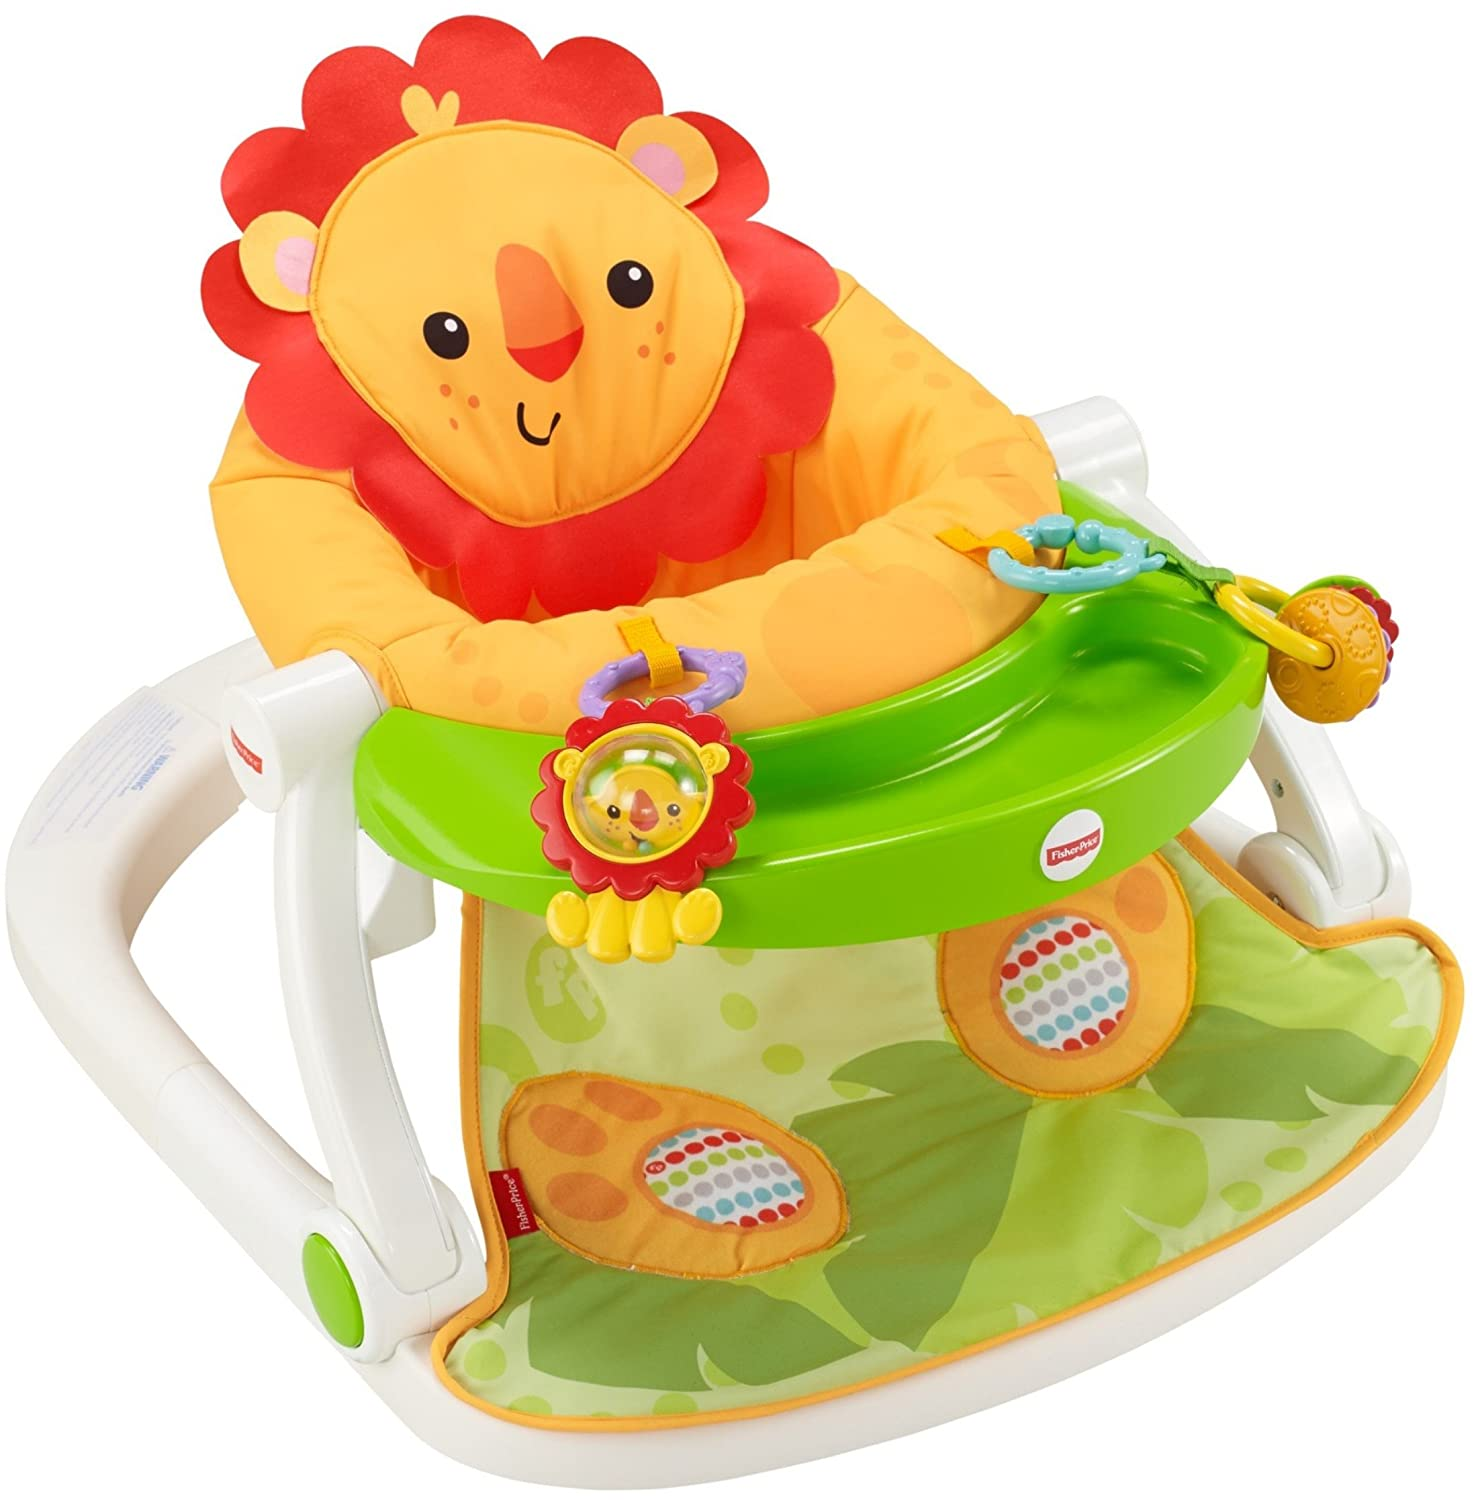 Fisher-Price Sit-Me-Up Floor Seat with Tray Amazonca/FISNE CBV48